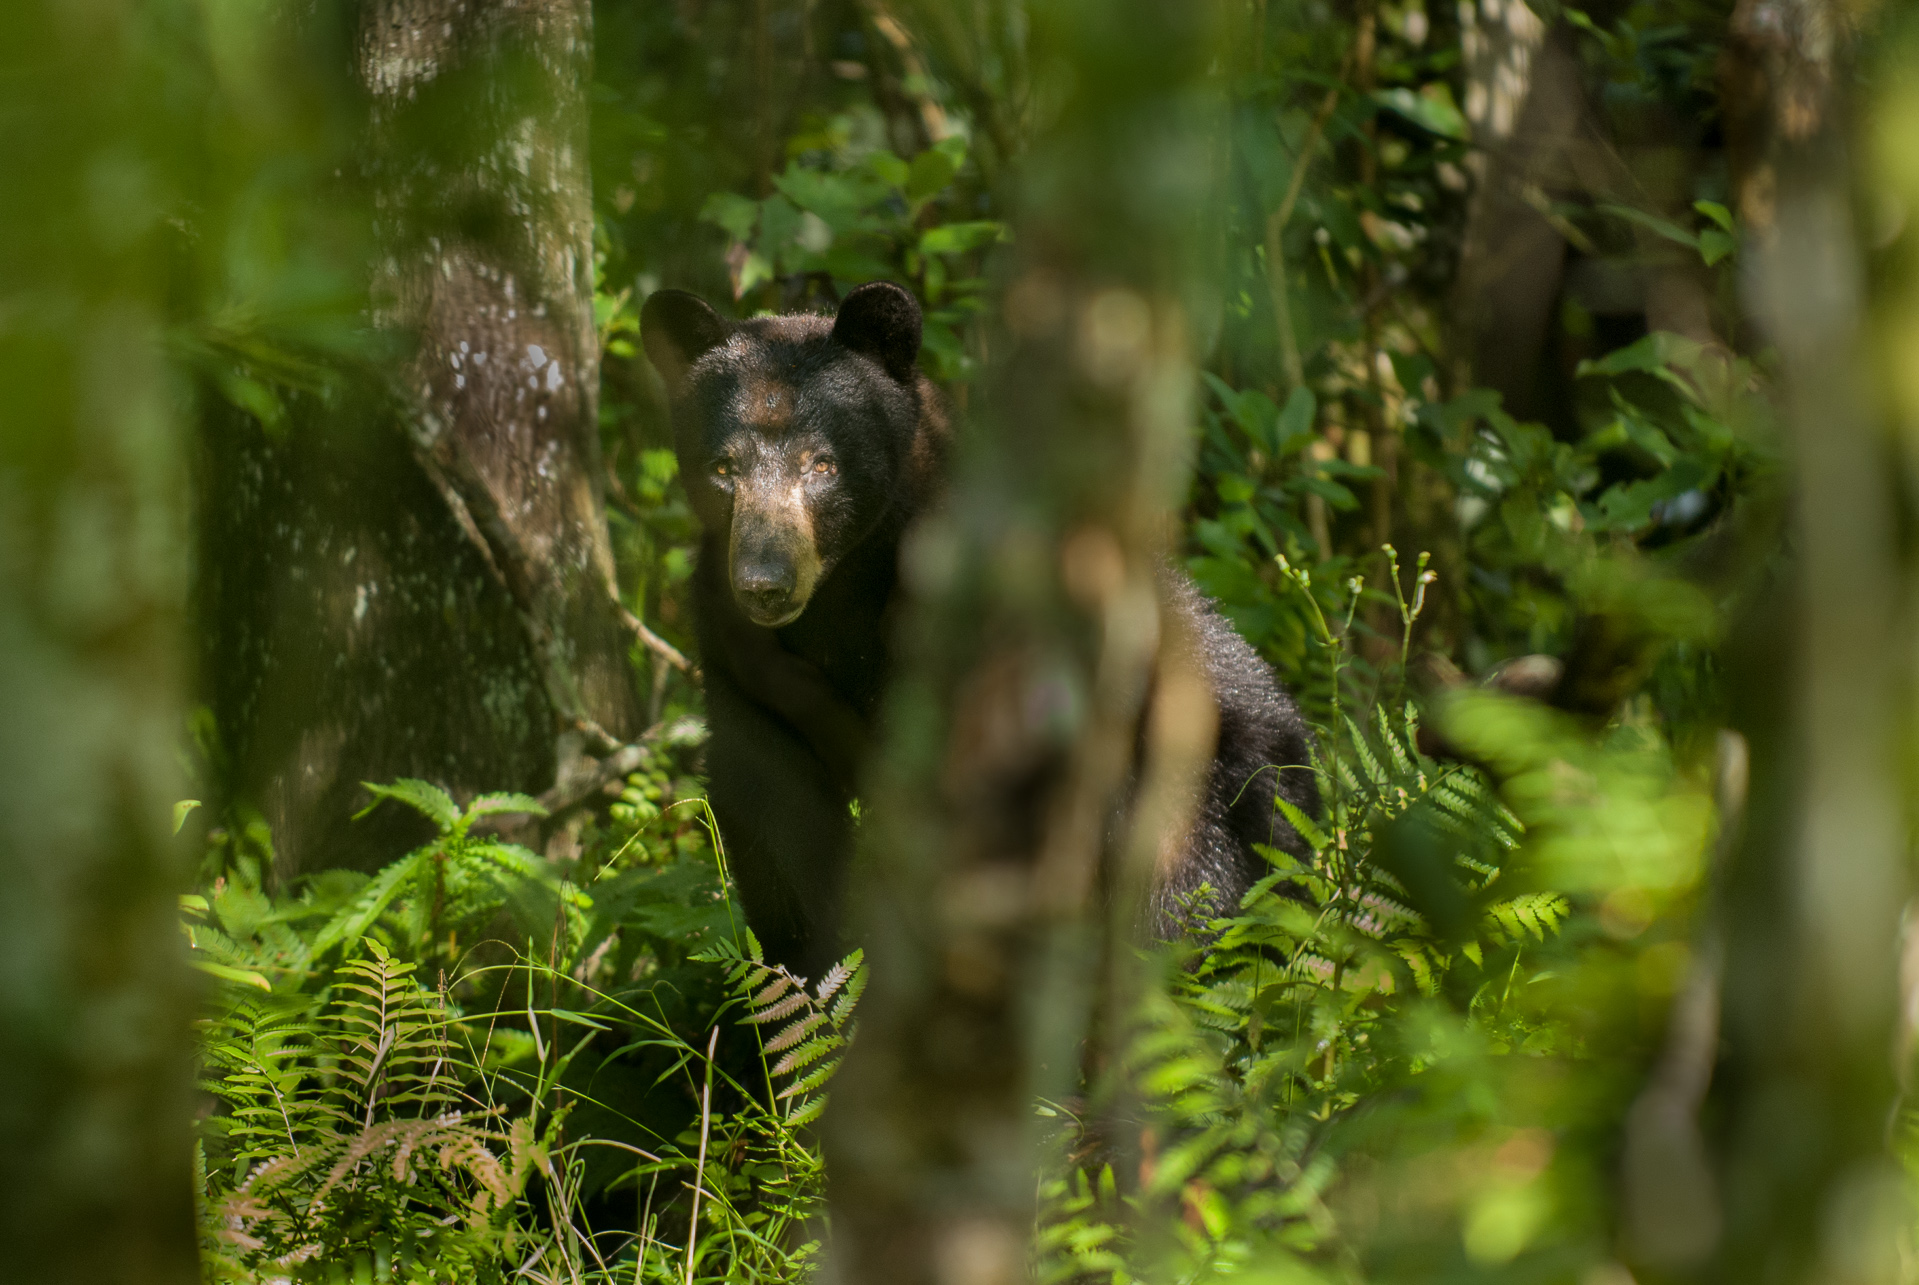 Biologist Shares Experience Of Tracking A Black Bear